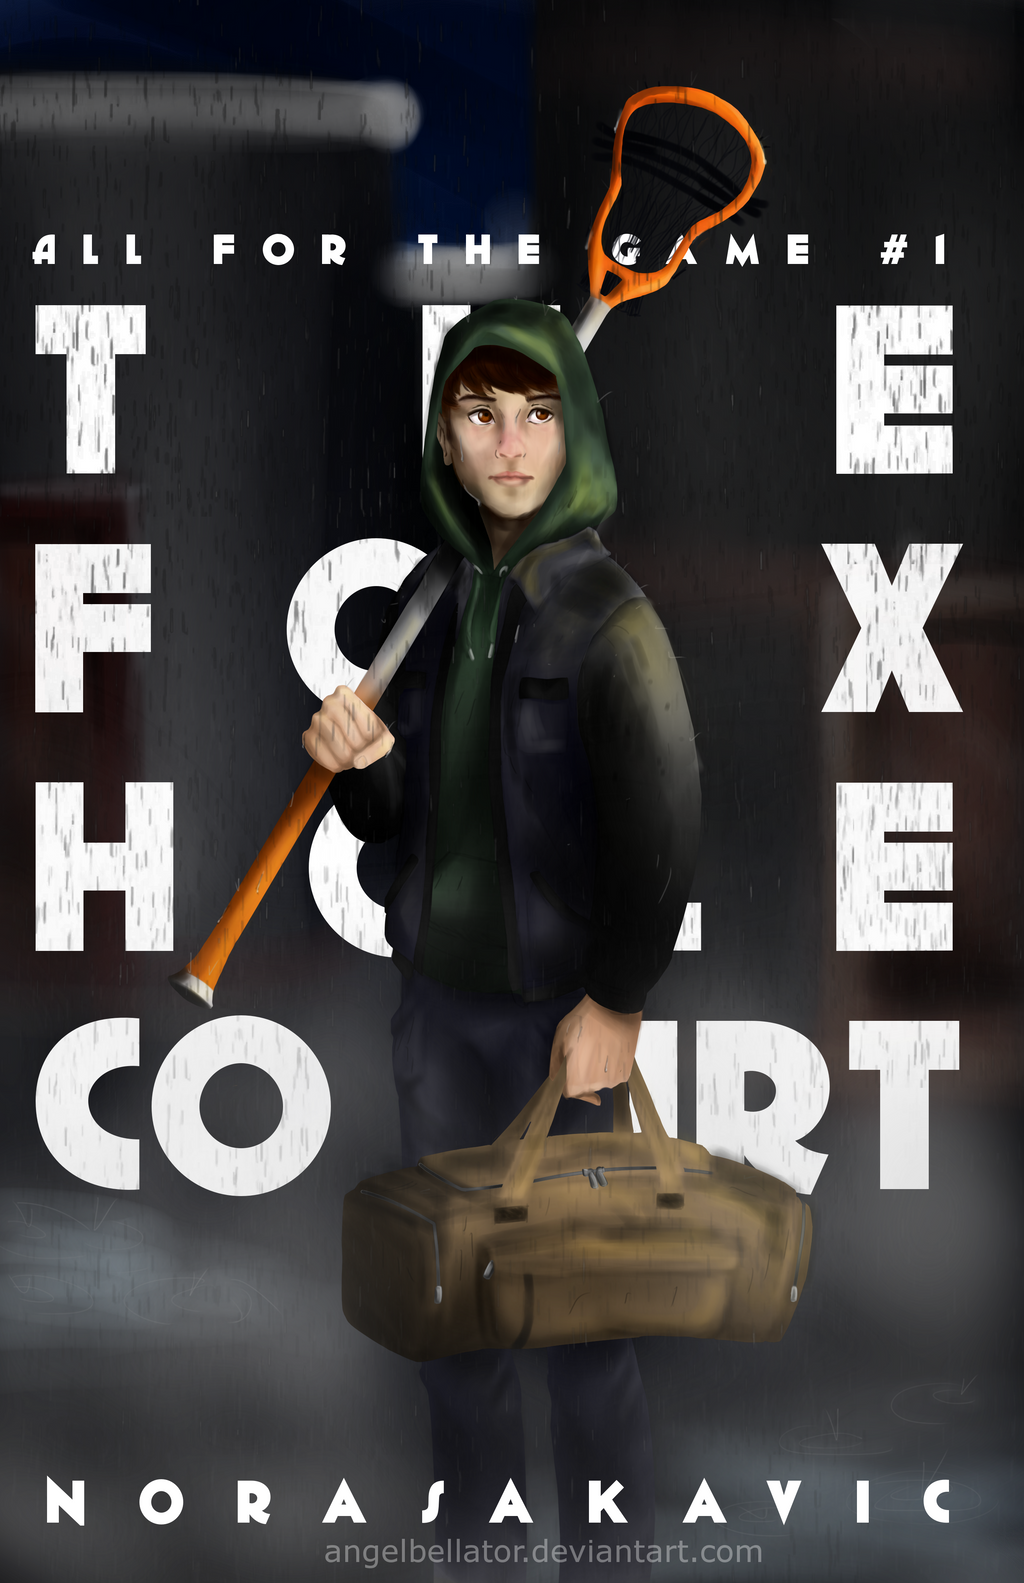 The Foxhole Court cover design by AngelBellator